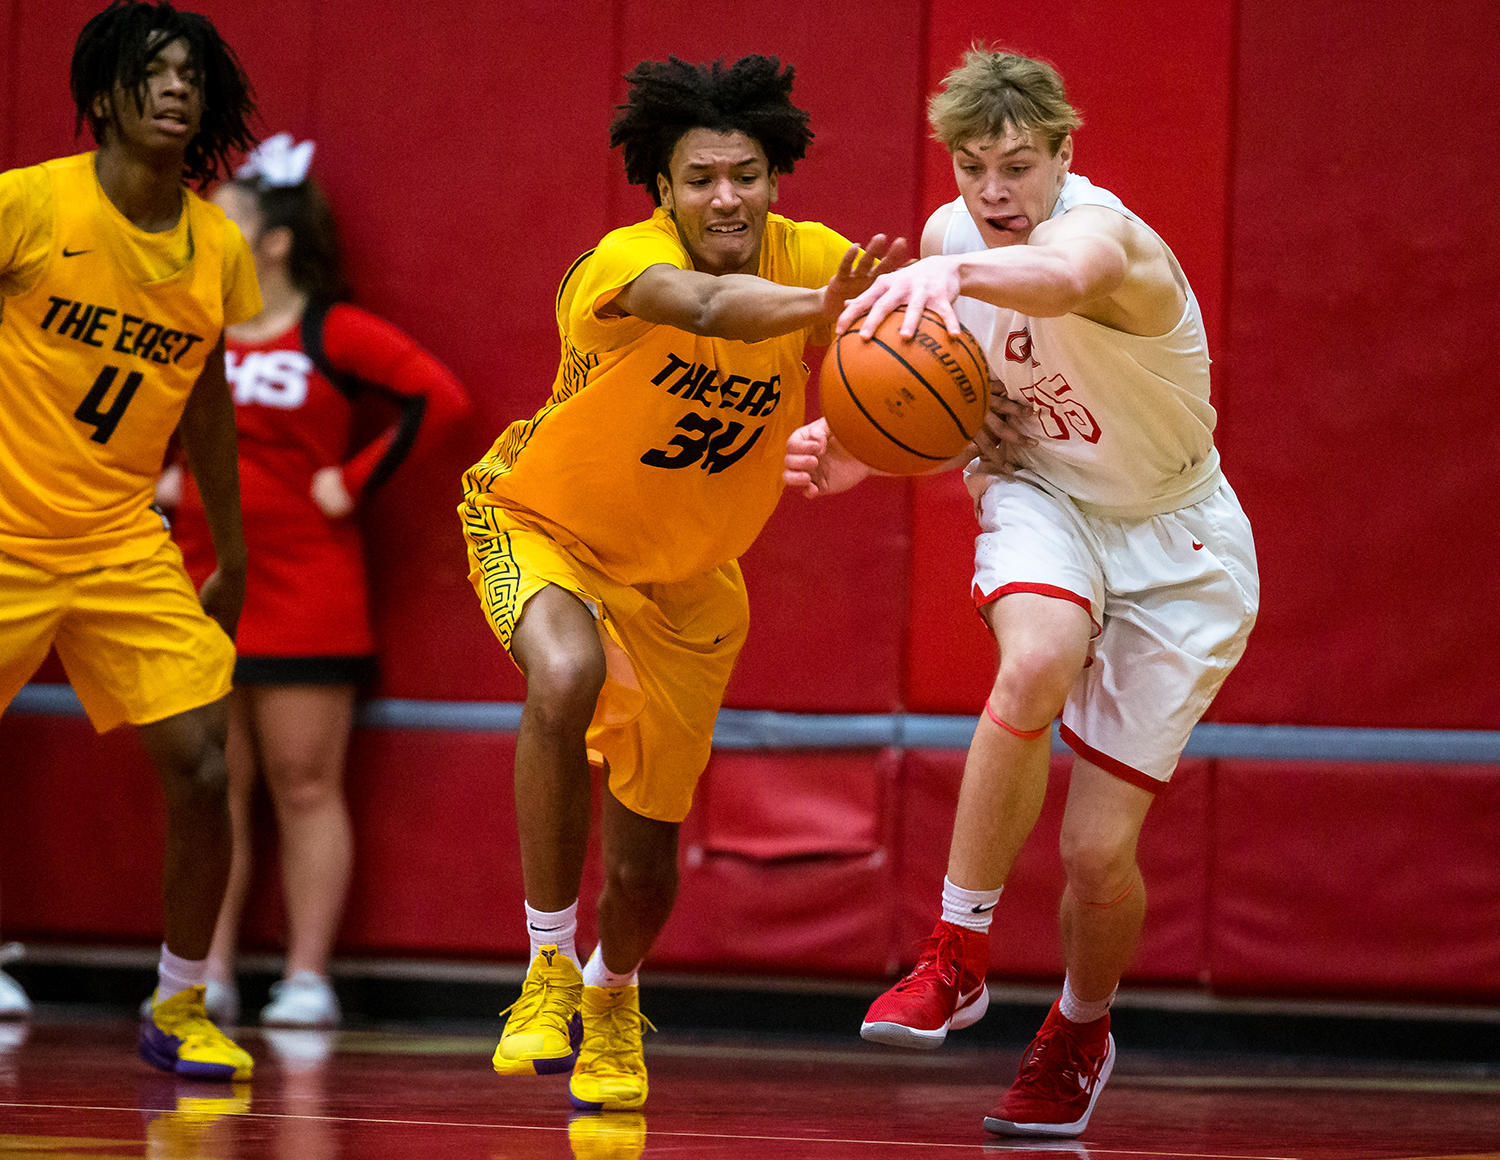 Southeast's Michael Tyler (34) forces a turnover from Glenwood's Eli Vogler (15) in the second half at Glenwood High School, Tuesday, Feb. 12, 2019, in Chatham, Ill. [Justin L. Fowler/The State Journal-Register]